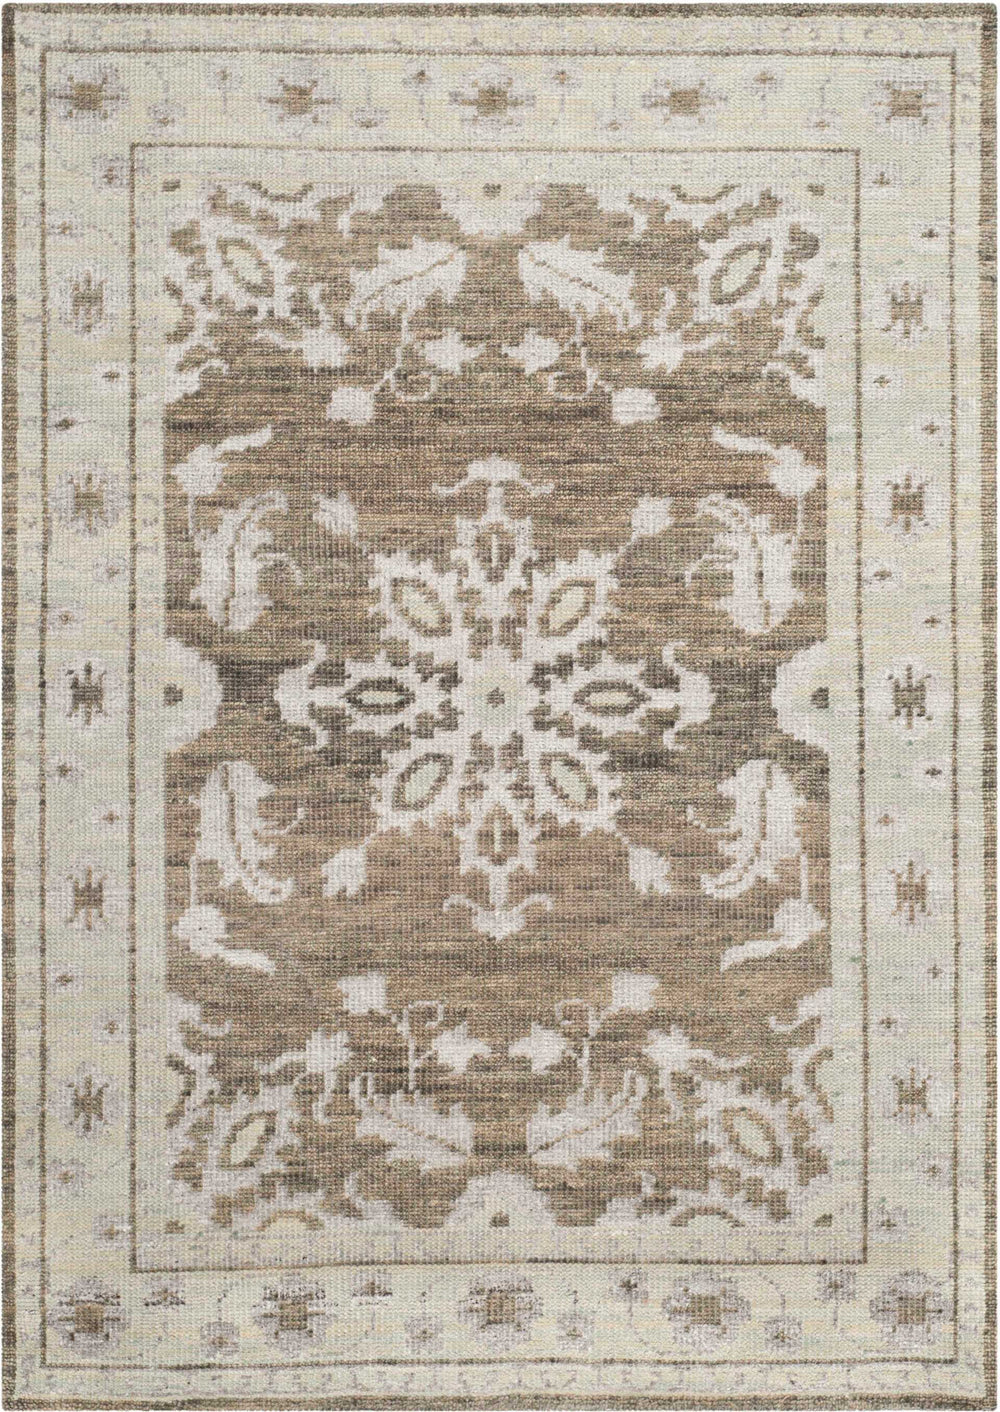 Safavieh Stone Wash STW216 Area Rug